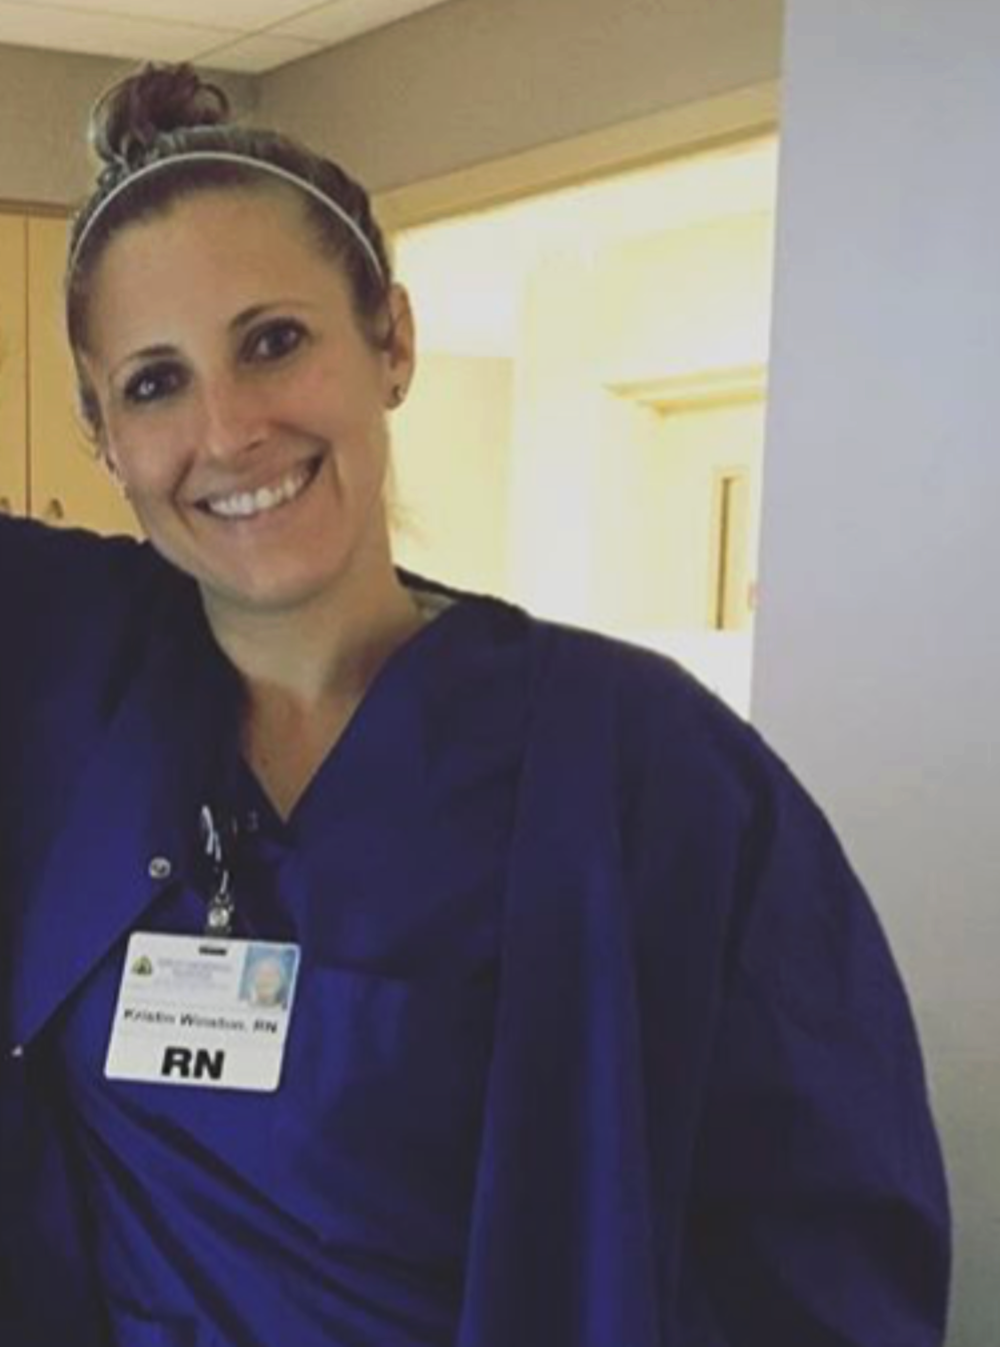 Kristin Labor and Delivery Nurse Sibley Hospital